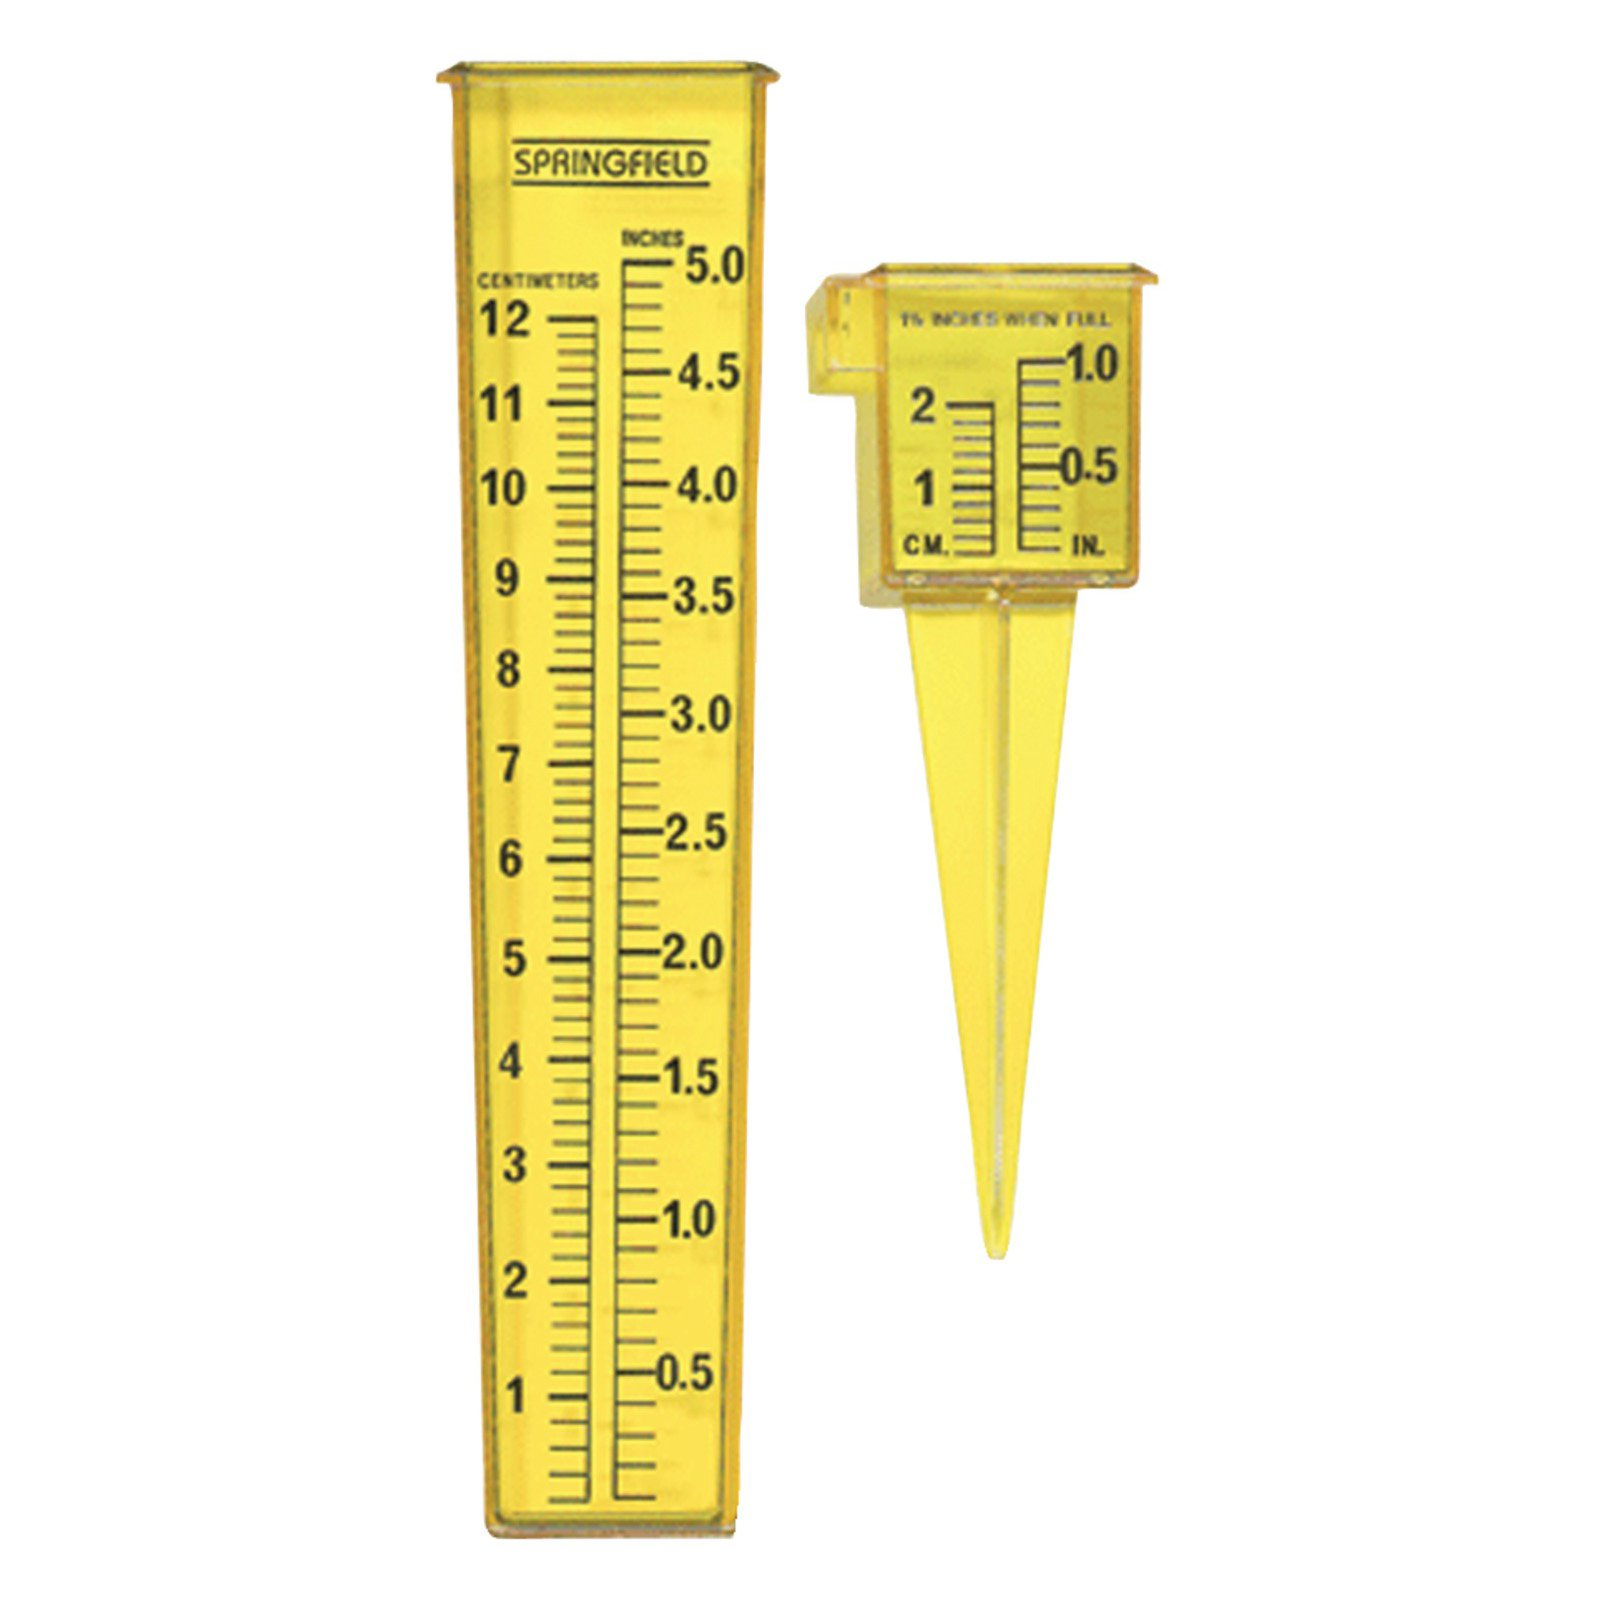 Springfield 2-In-1 Sprinkler Gauge and Rain Gauge